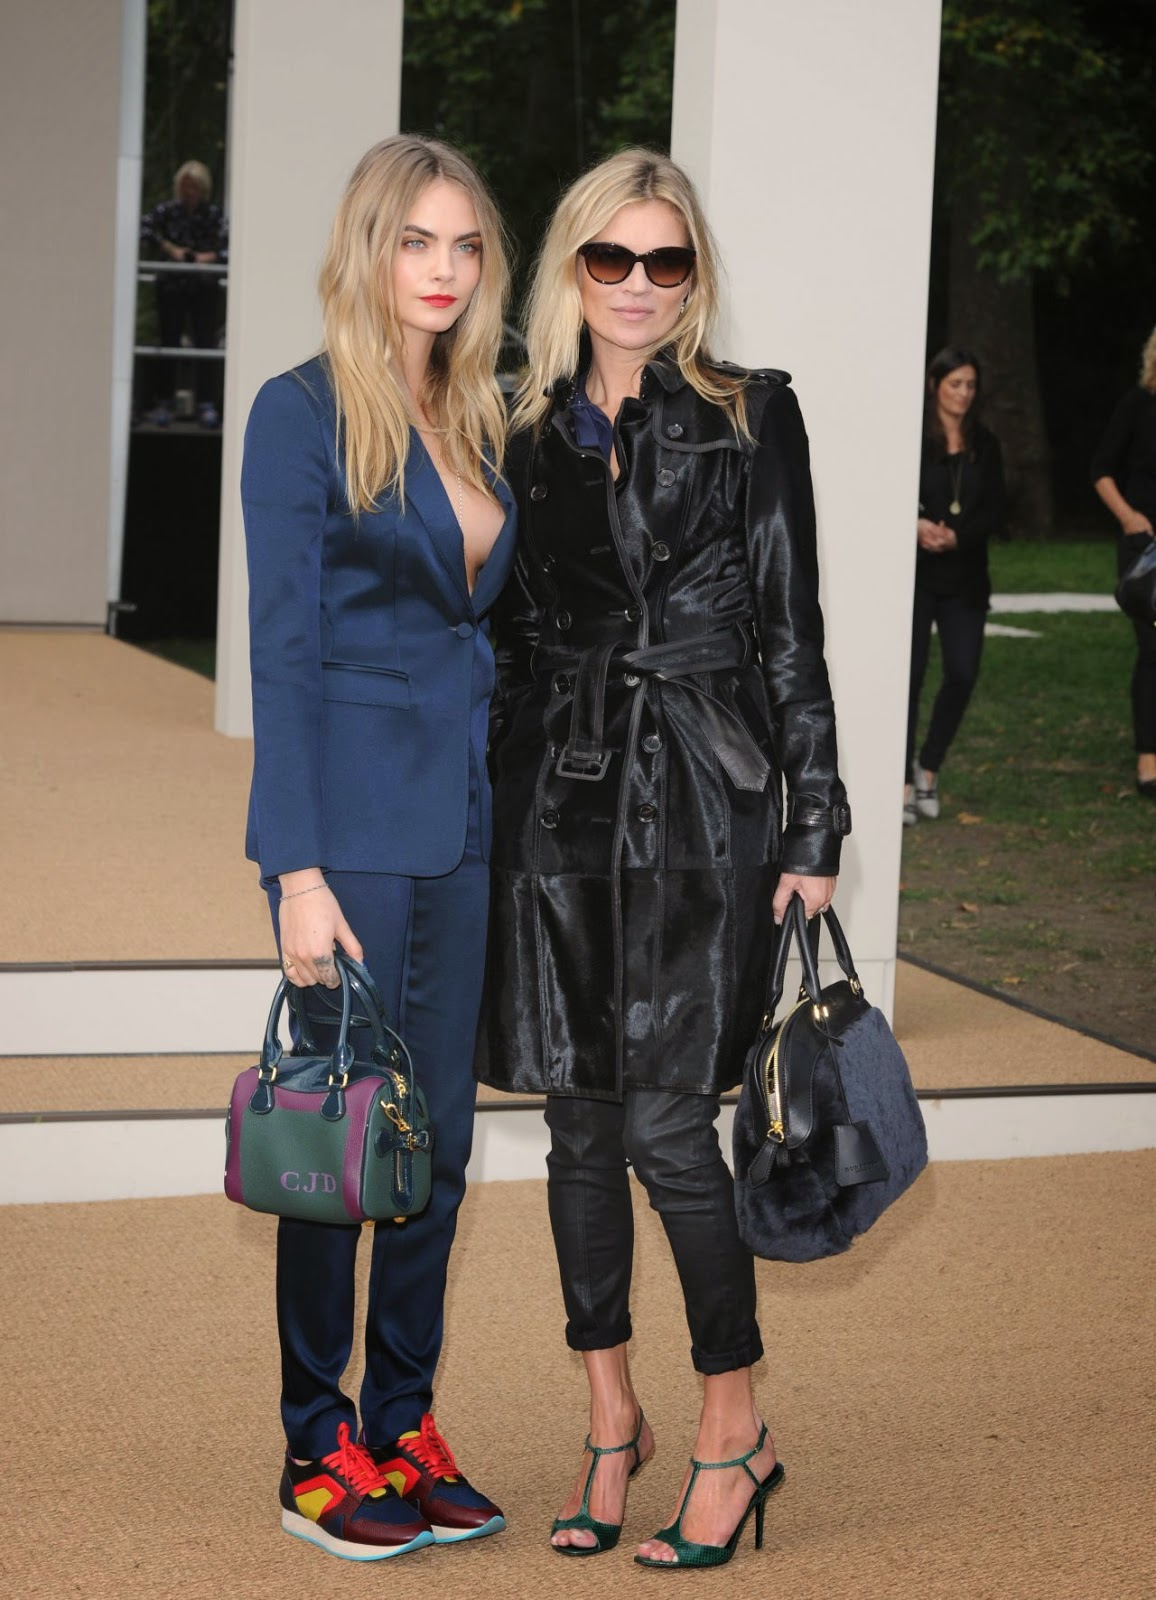 Kate Moss and Cara Delevingne arrive hand in hand to the Burberry Prorsum Spring 2015 London Fashion Week Show